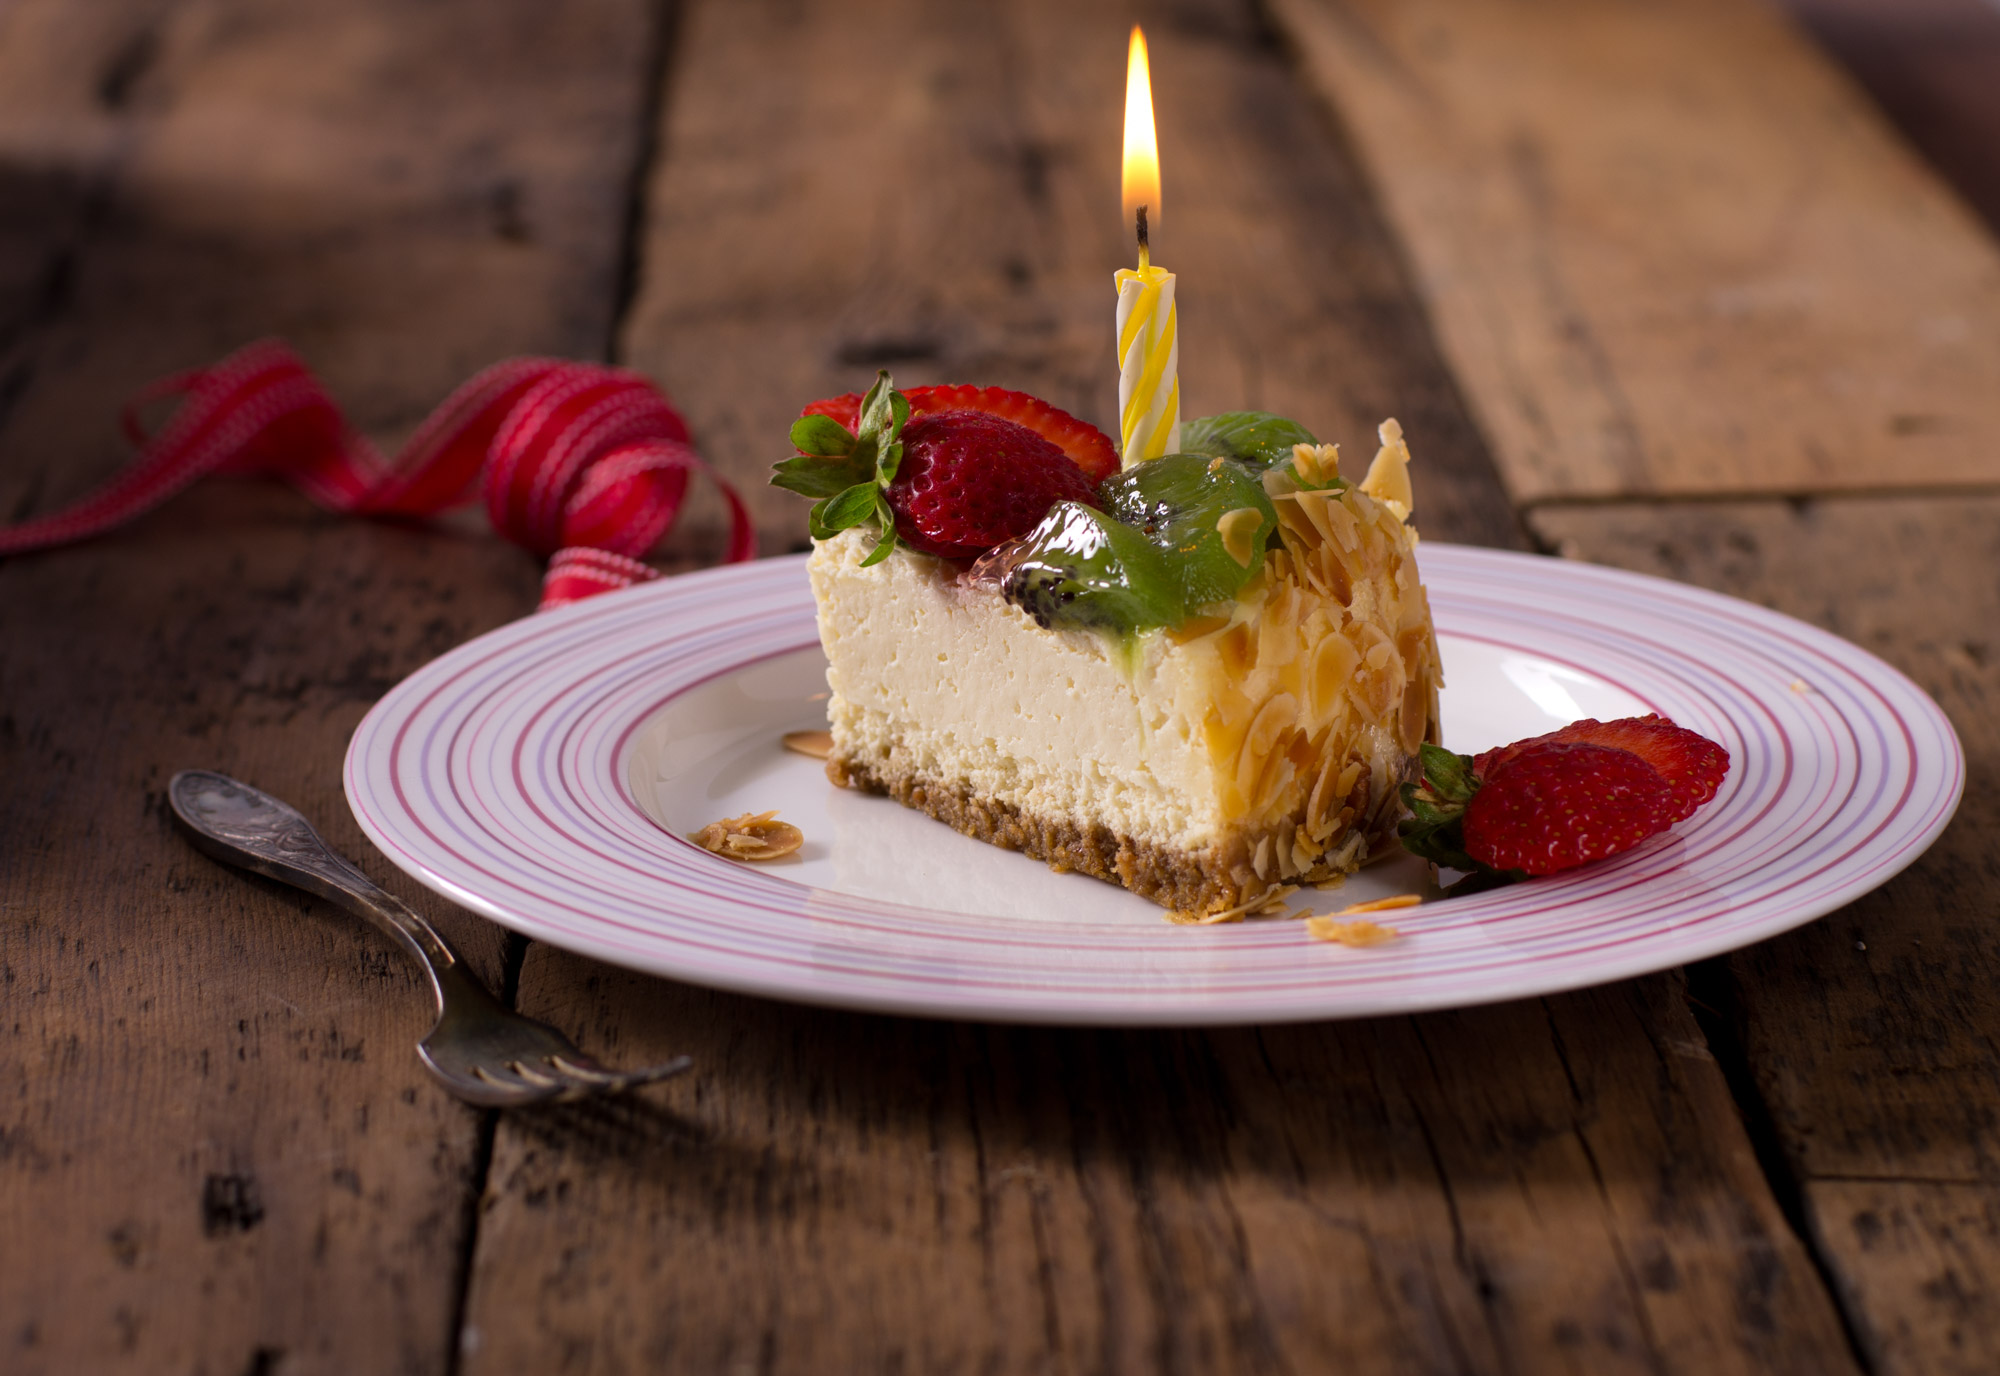 Fruit cheesecake with birthday candle